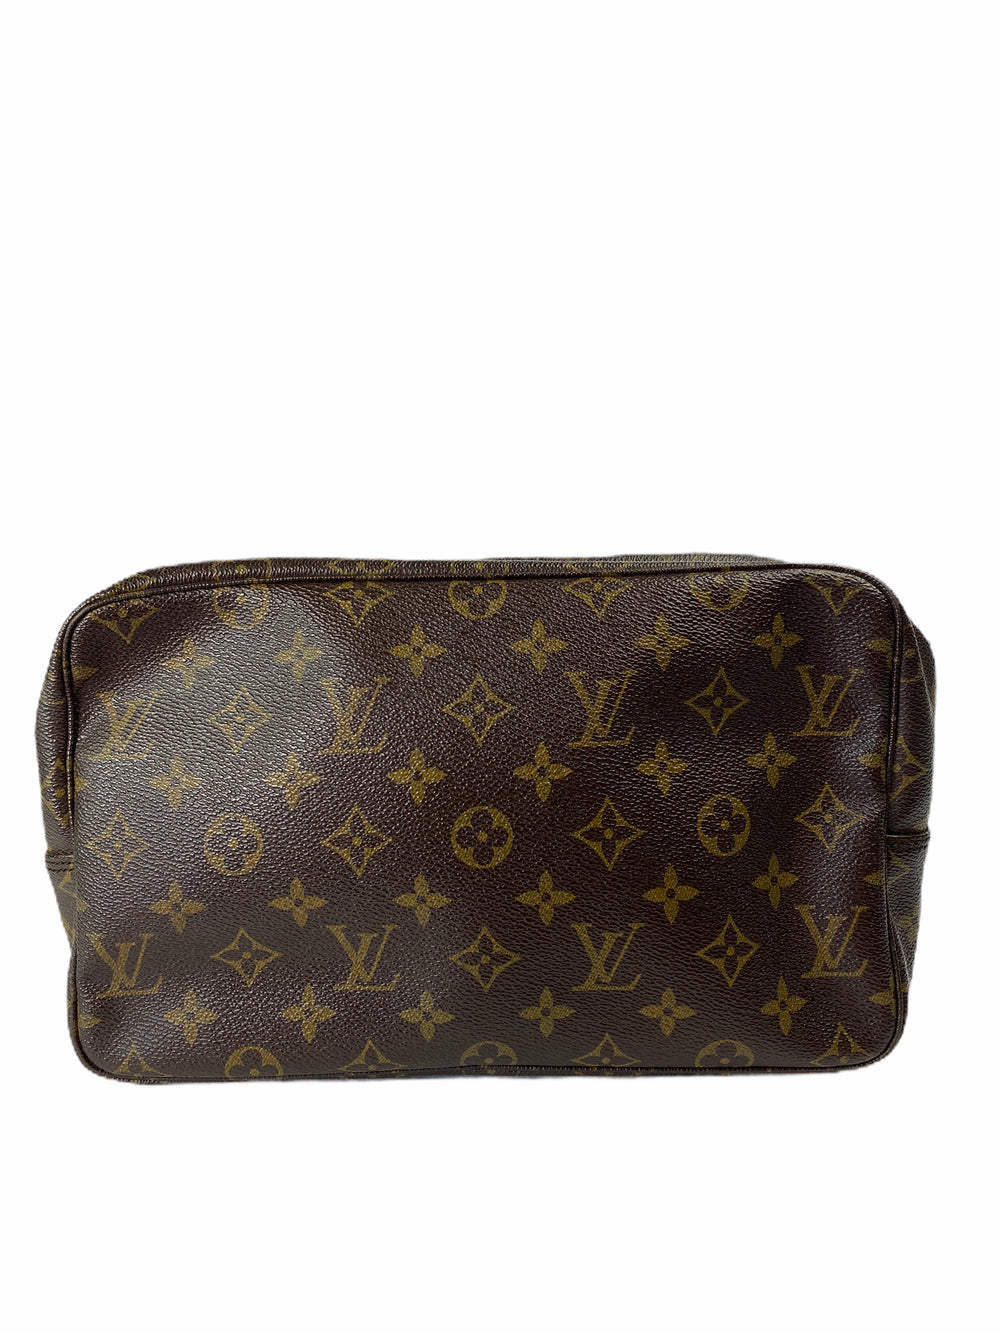 Louis Vuitton Vintage Monogram Canvas Toiletry Bag - As Seen on Instagram 09/08/2020